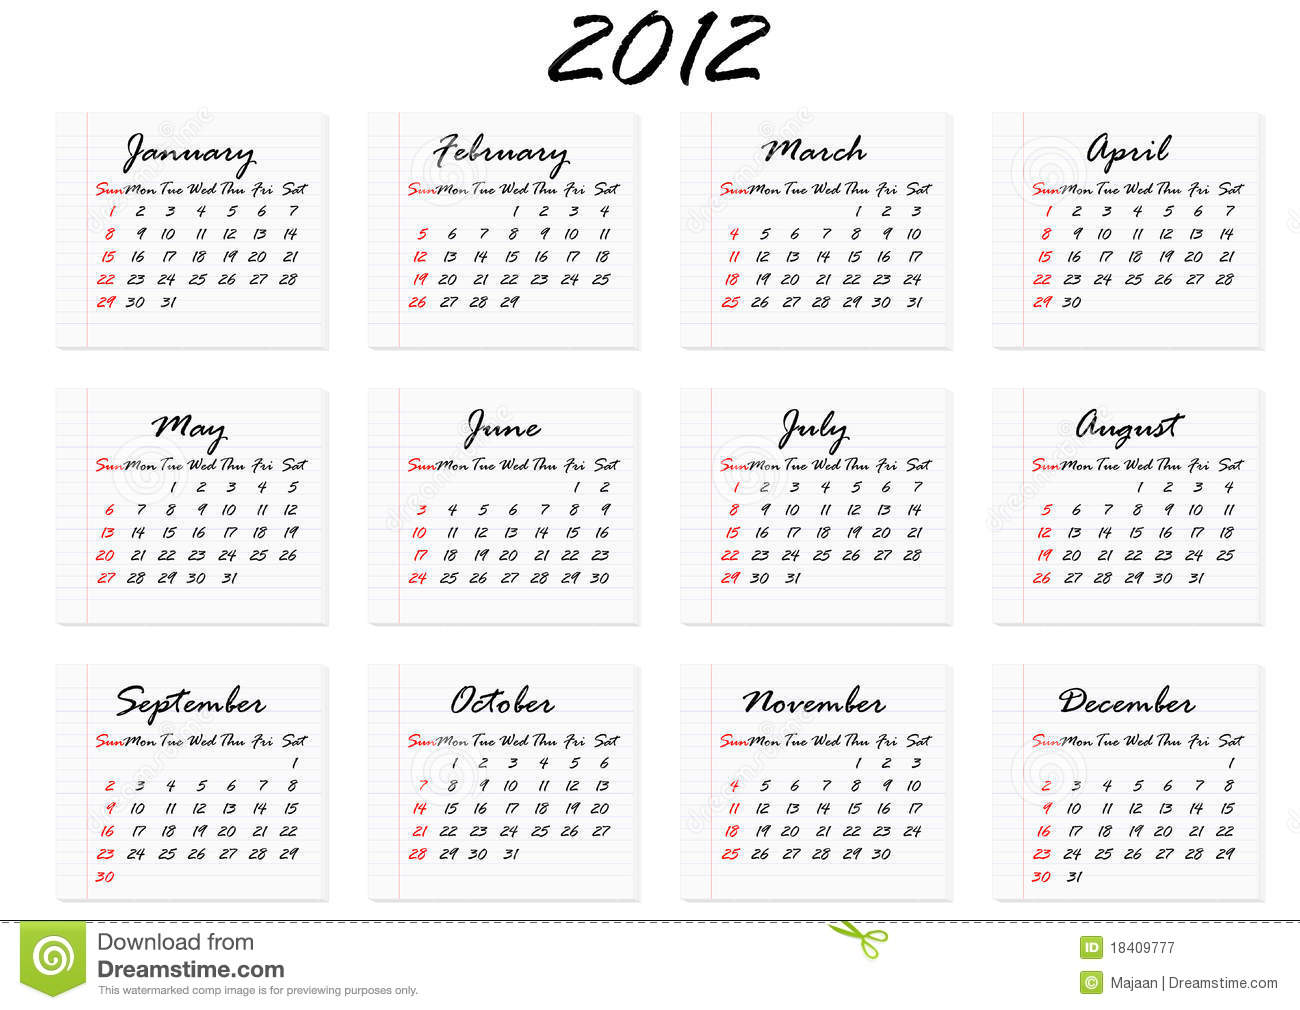 ENGLISH CALENDAR 2012 DOWNLOAD